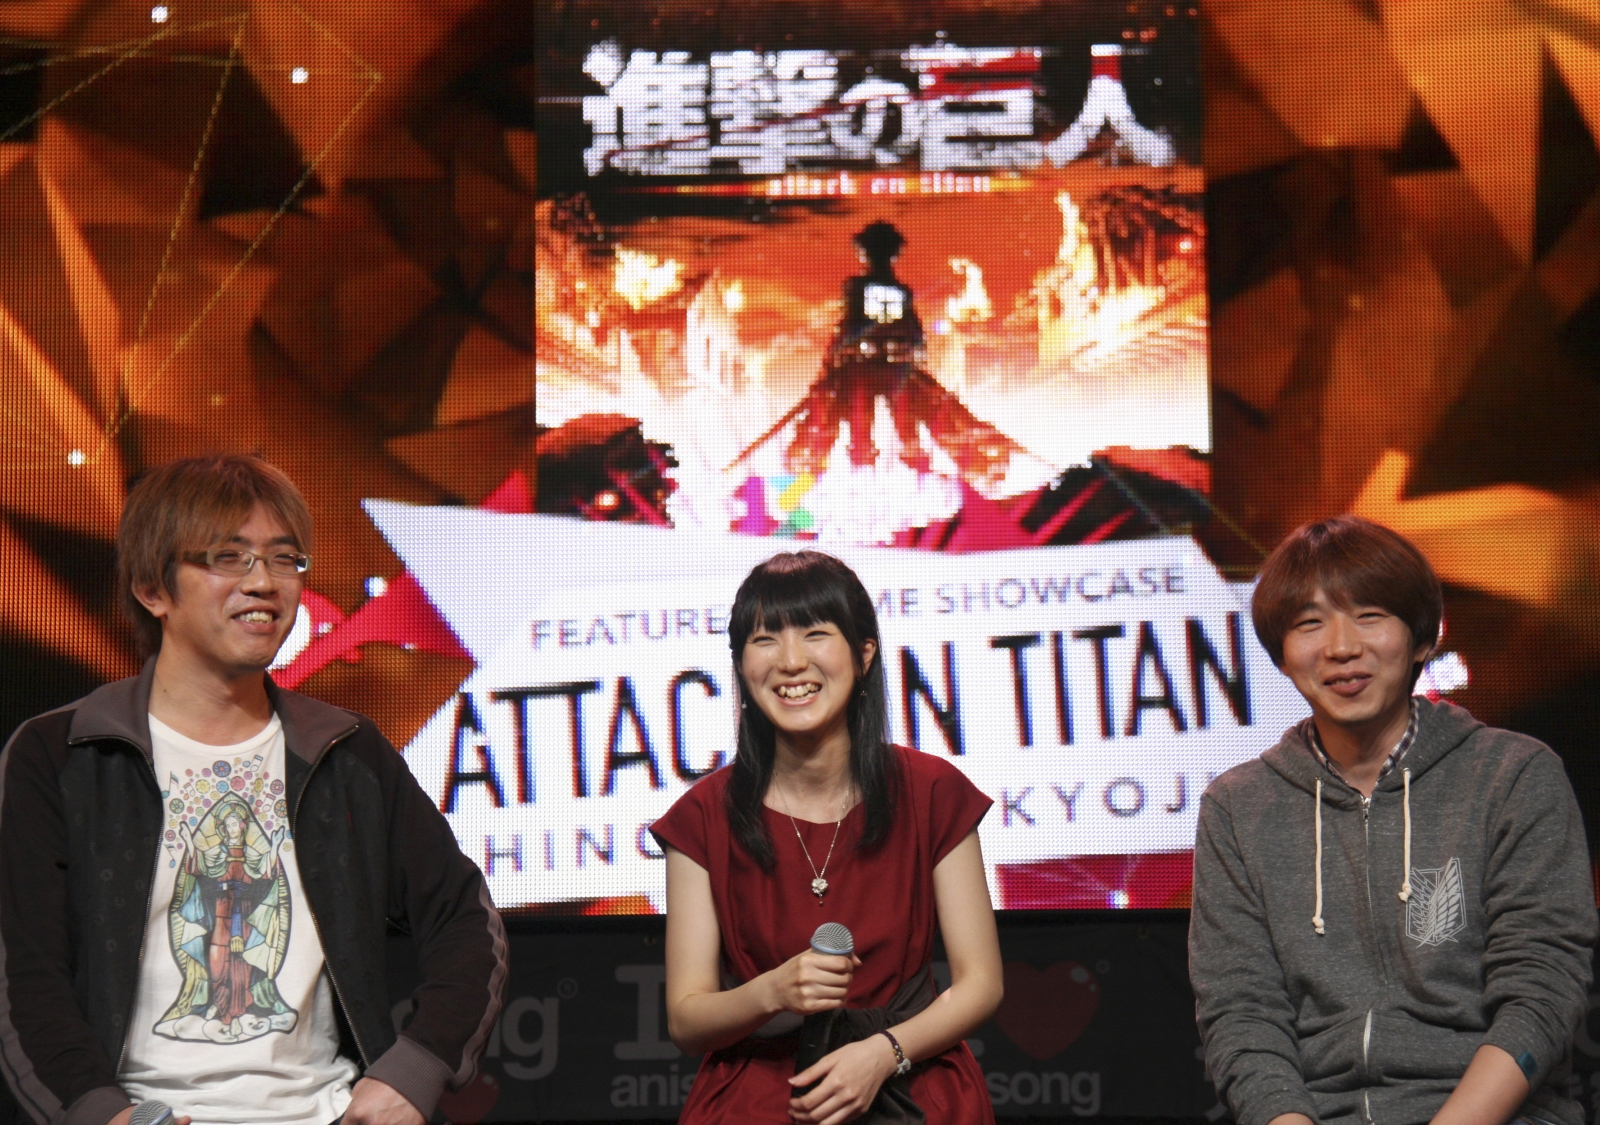 Attack on Titan movie